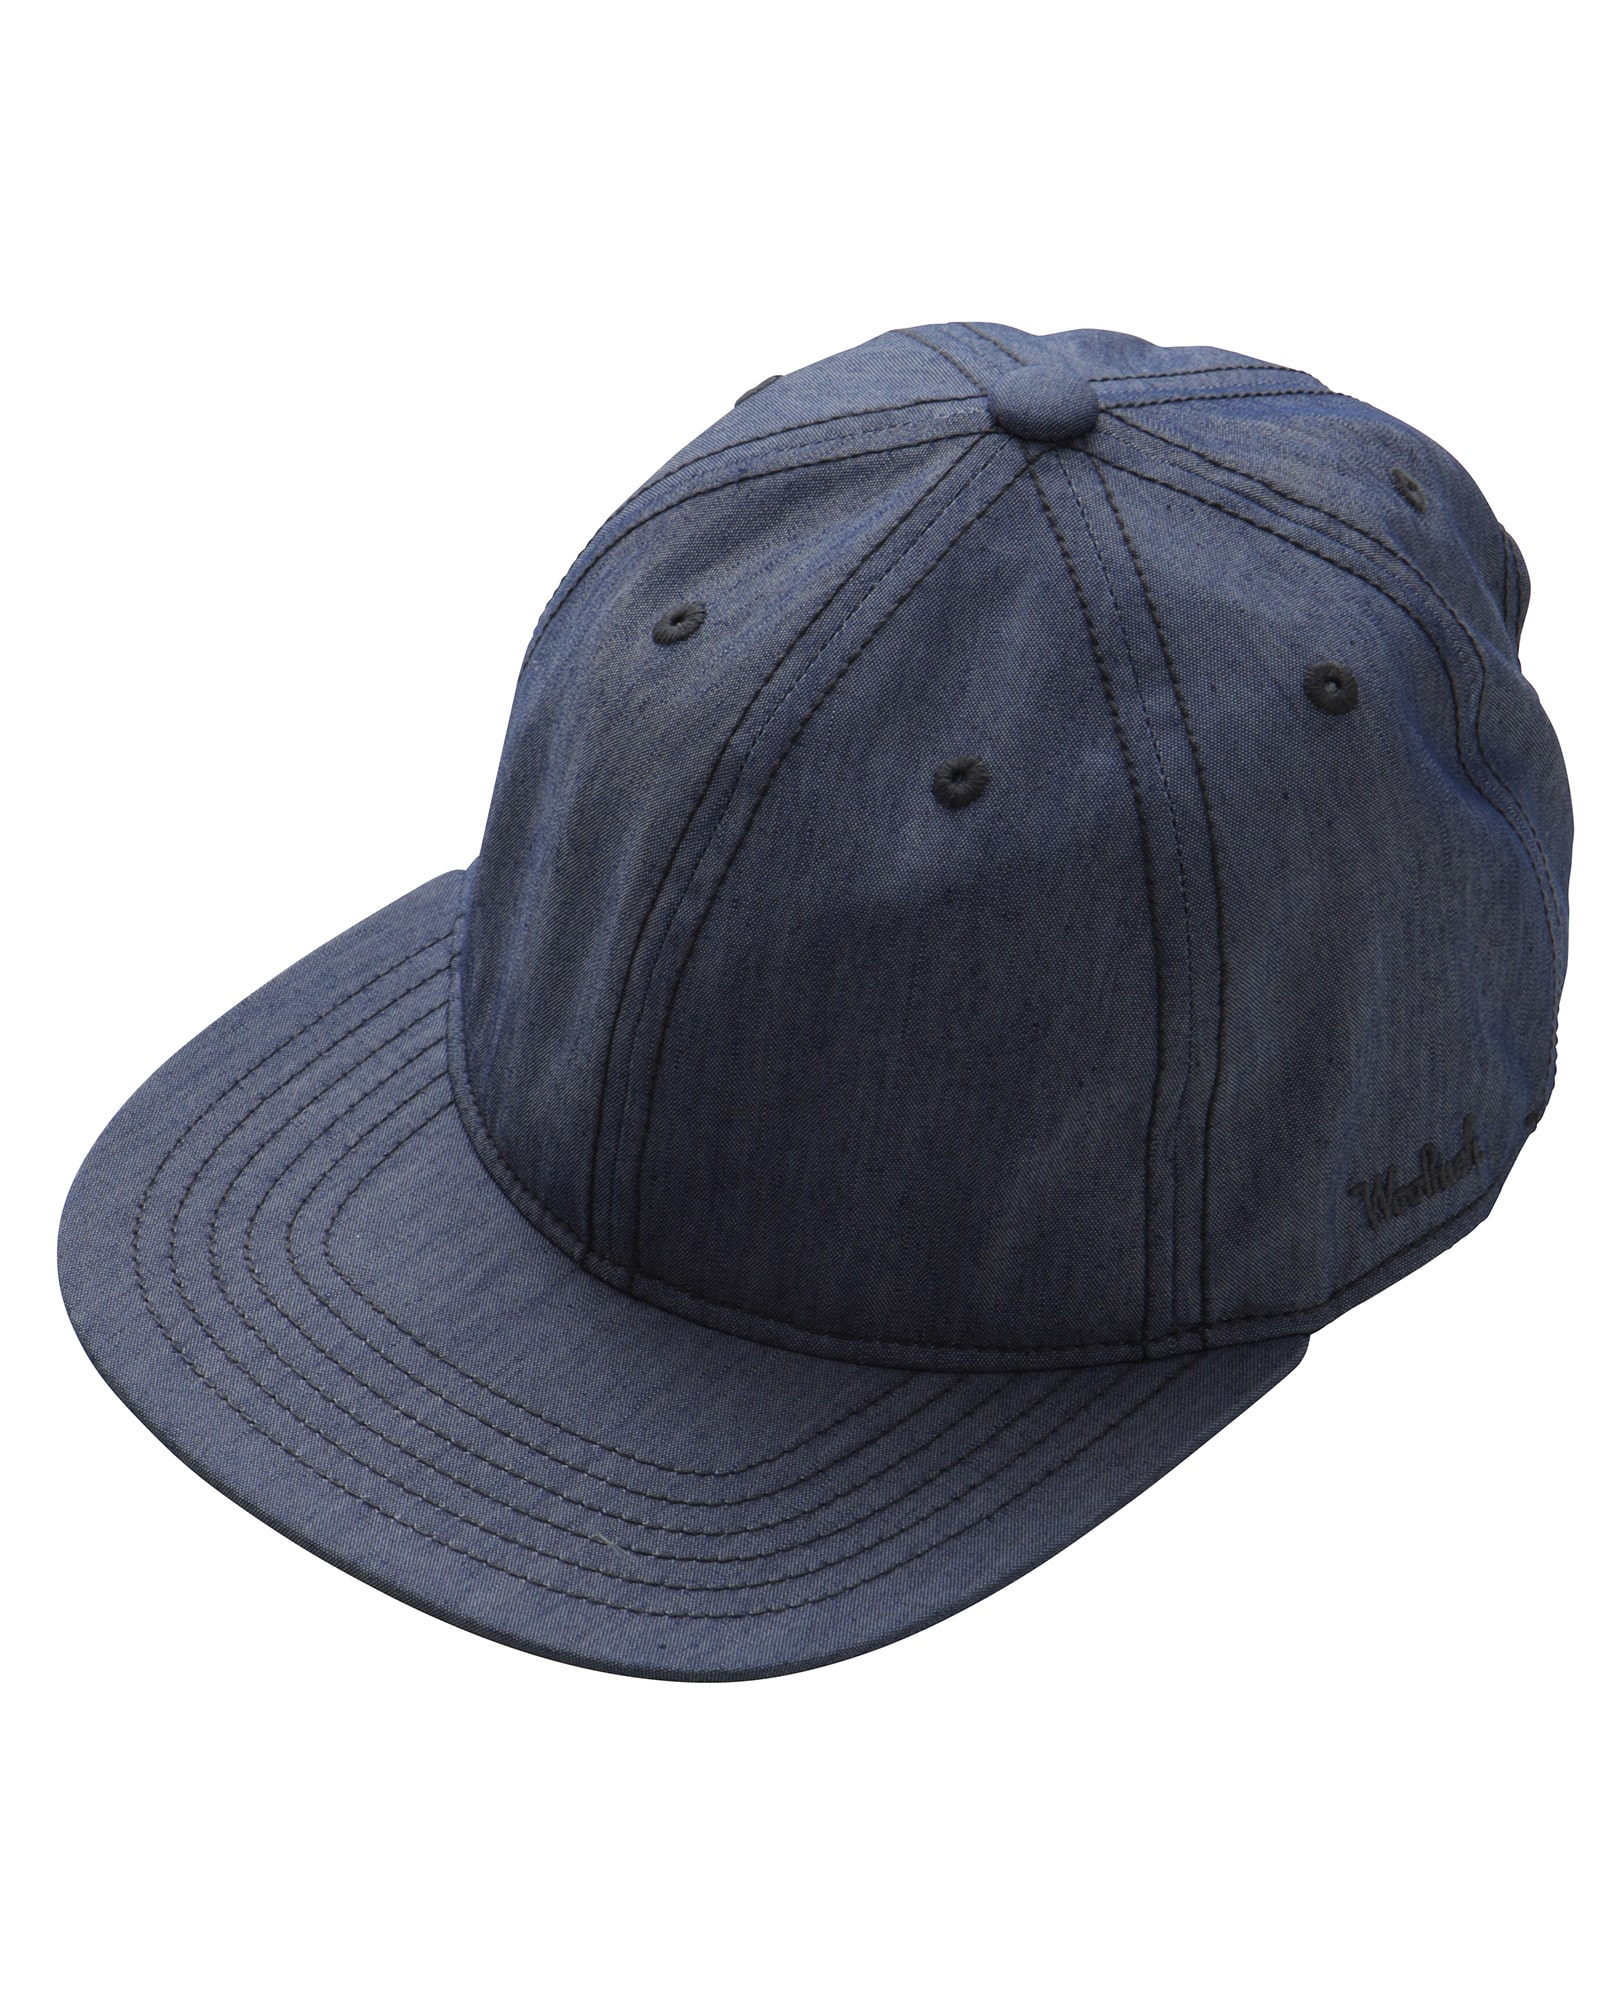 C/NY CANVAS DENIM CAP